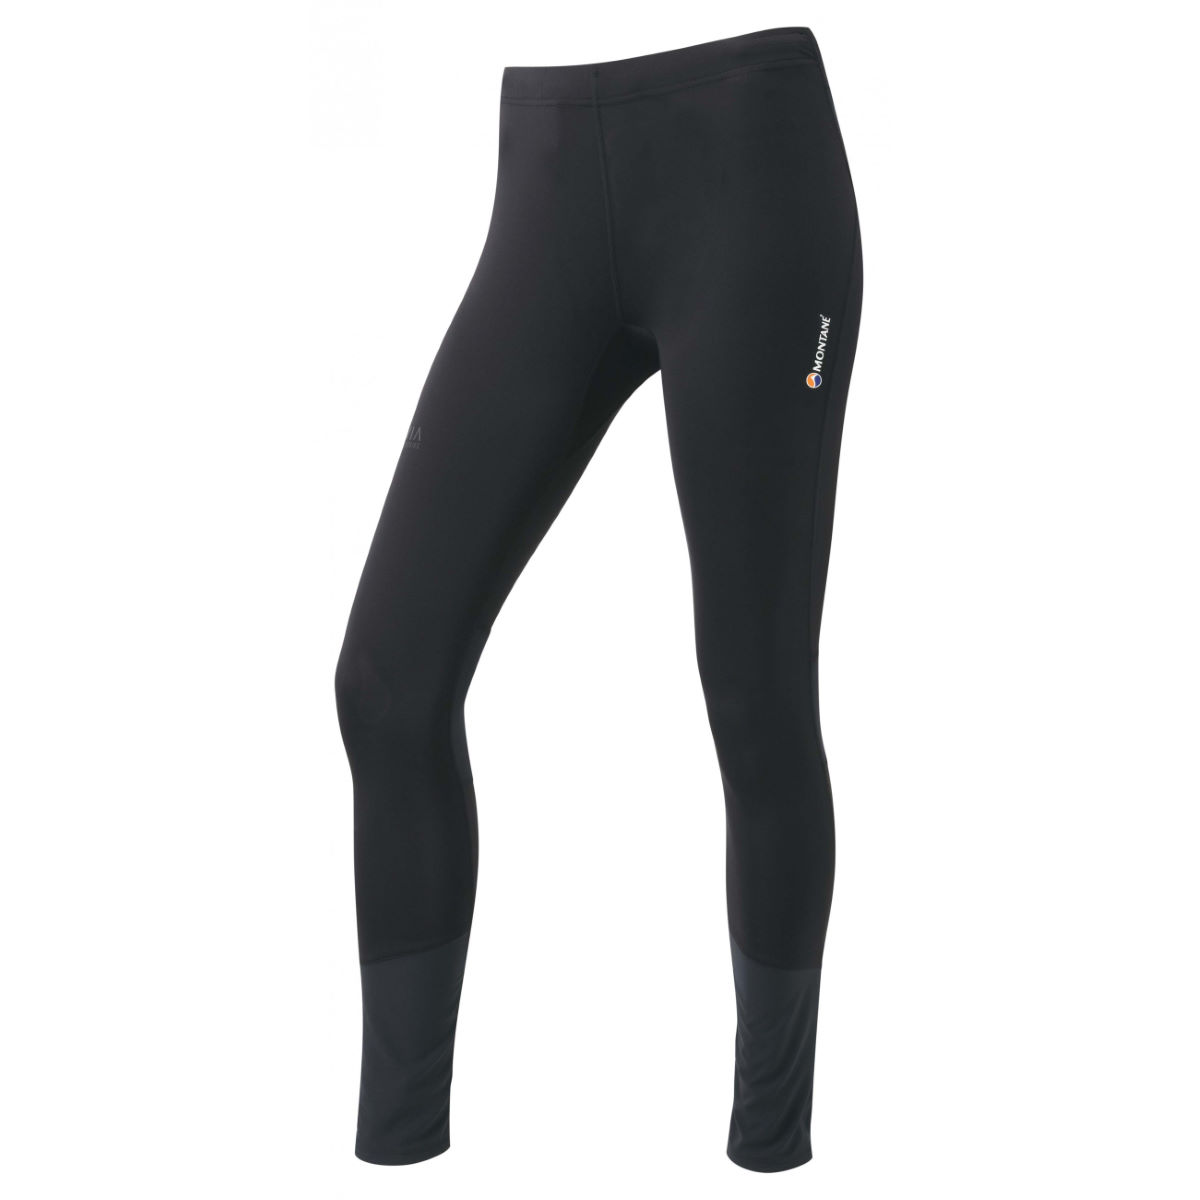 Collant long Femme Montane Trail Series (AH16) - M Noir Collants